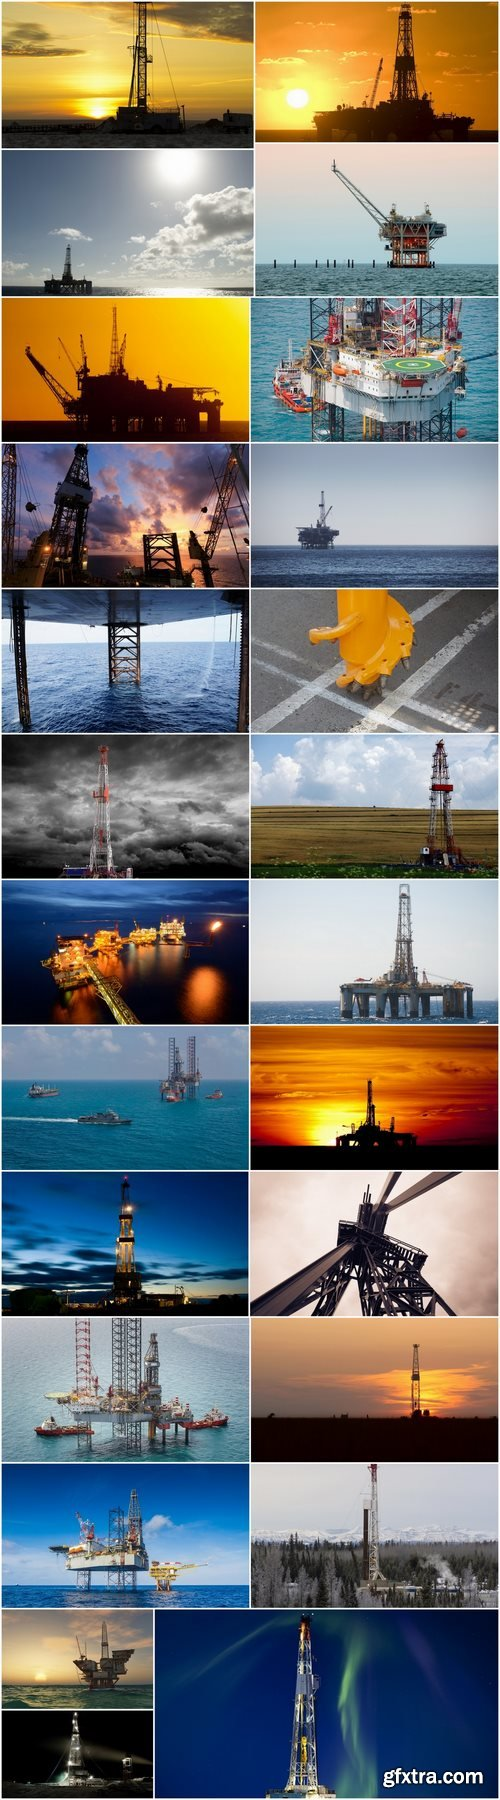 Oil drilling platform extraction of mineral resources gas oil 25 HQ Jpeg